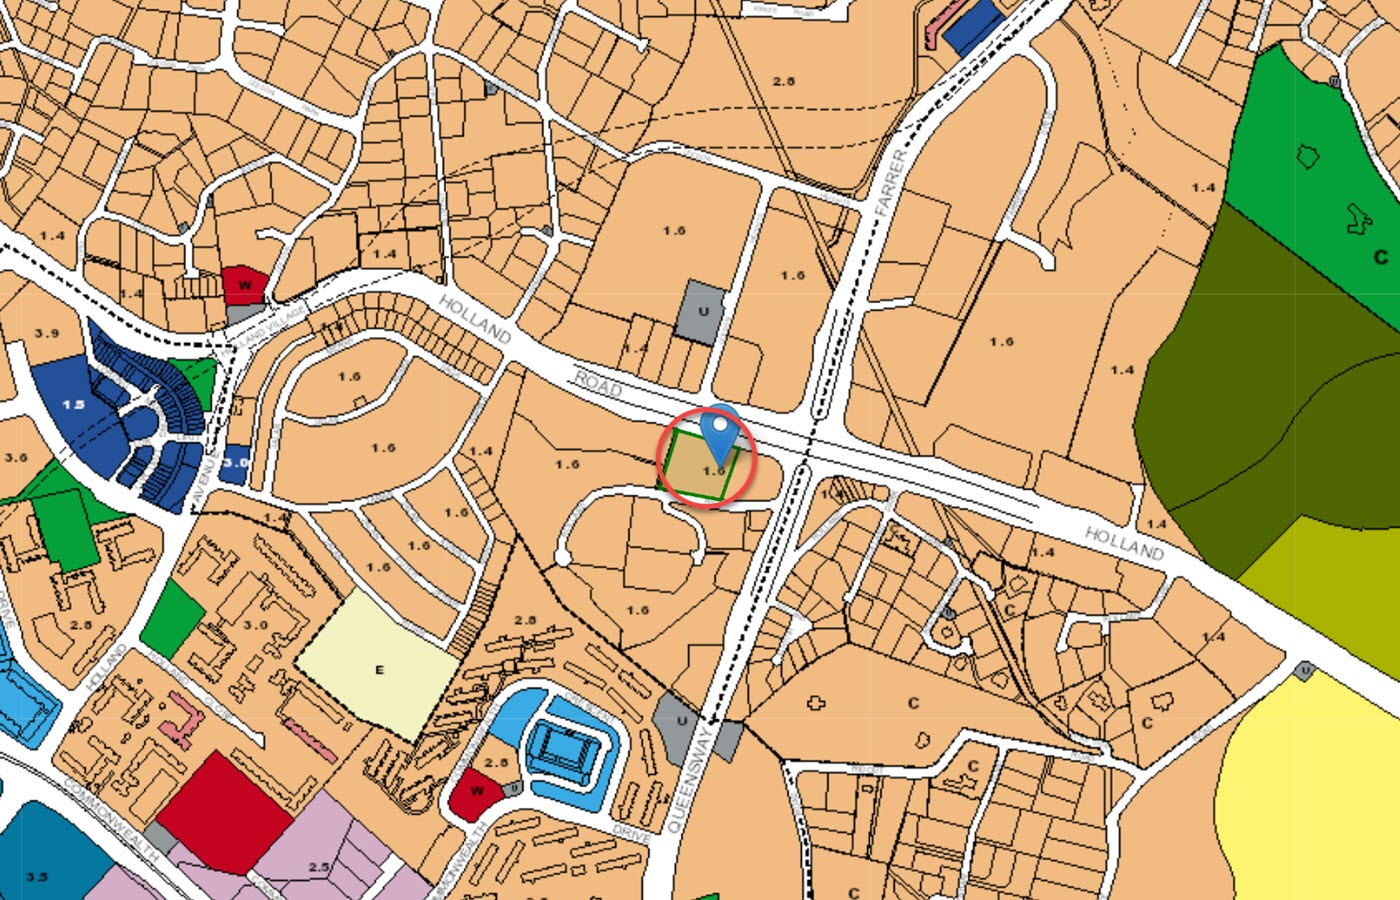 Hyll On Holland Condo Location - URA Master Plan Map